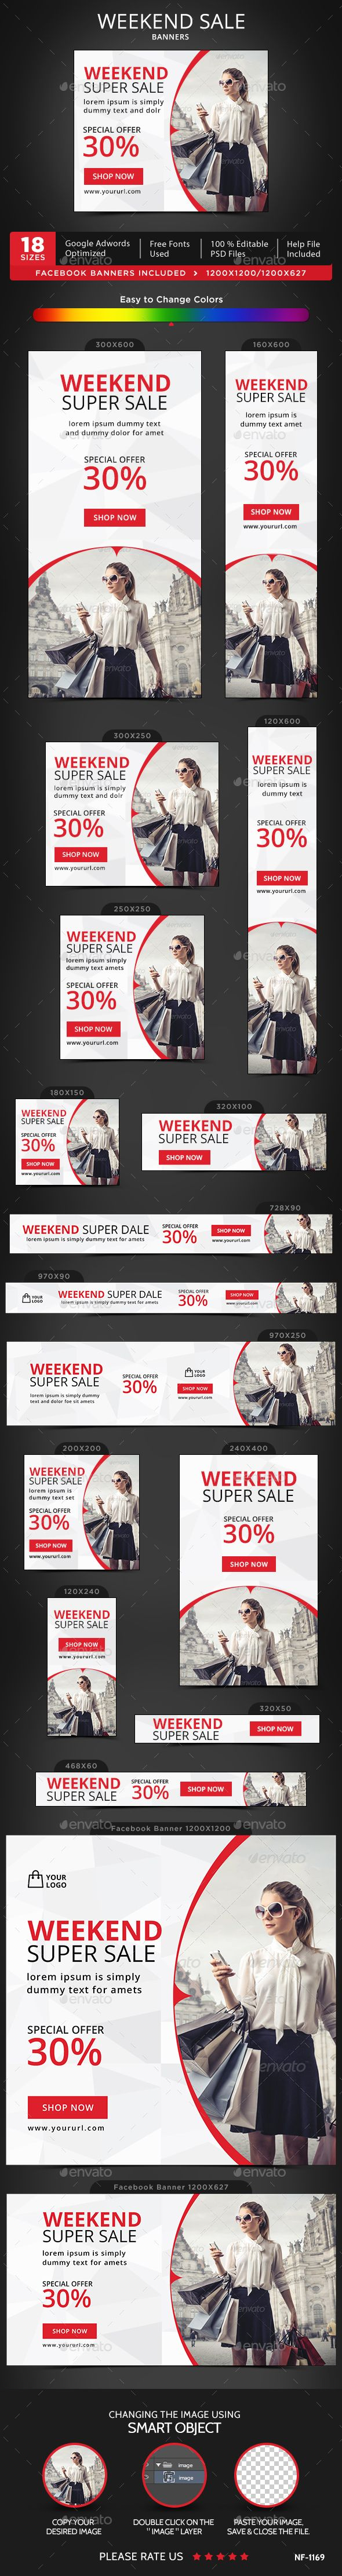 Weekend Sale Banners Template PSD. Download here: http://graphicriver.net/item/weekend-sale-banners/15394508?ref=ksioks